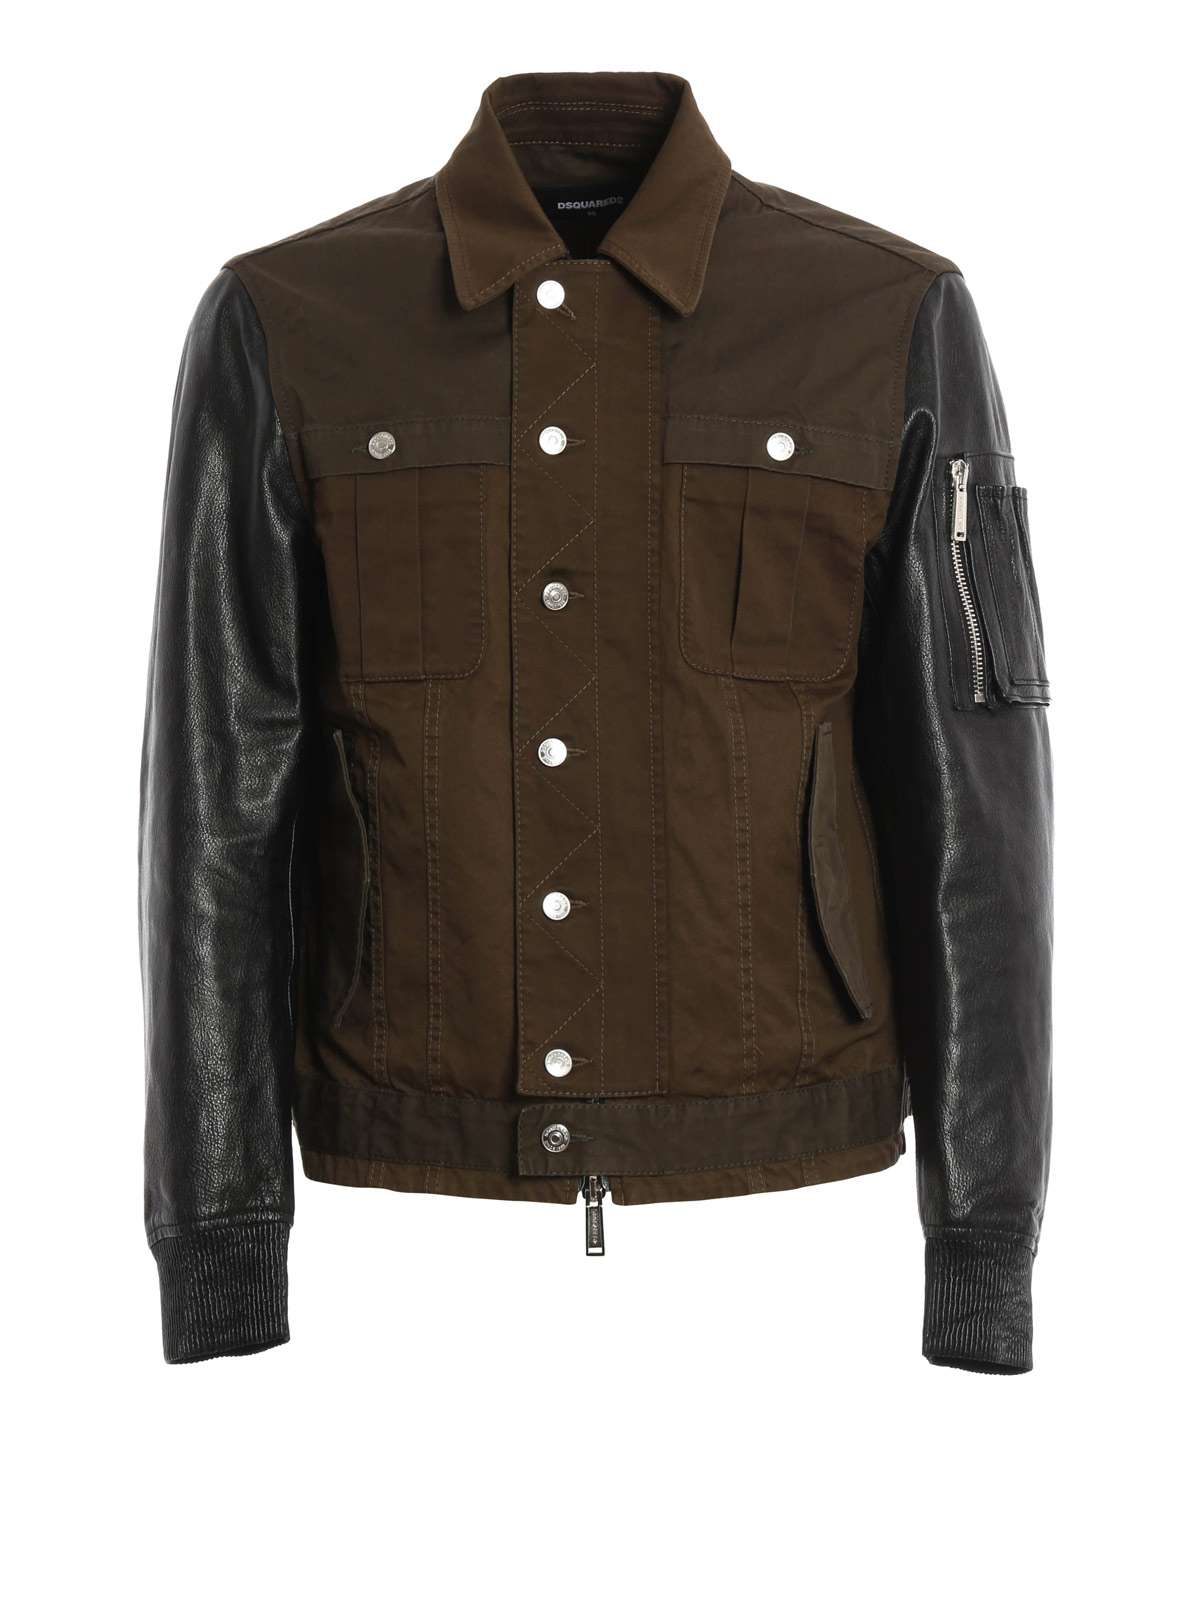 Leather and cotton jacket